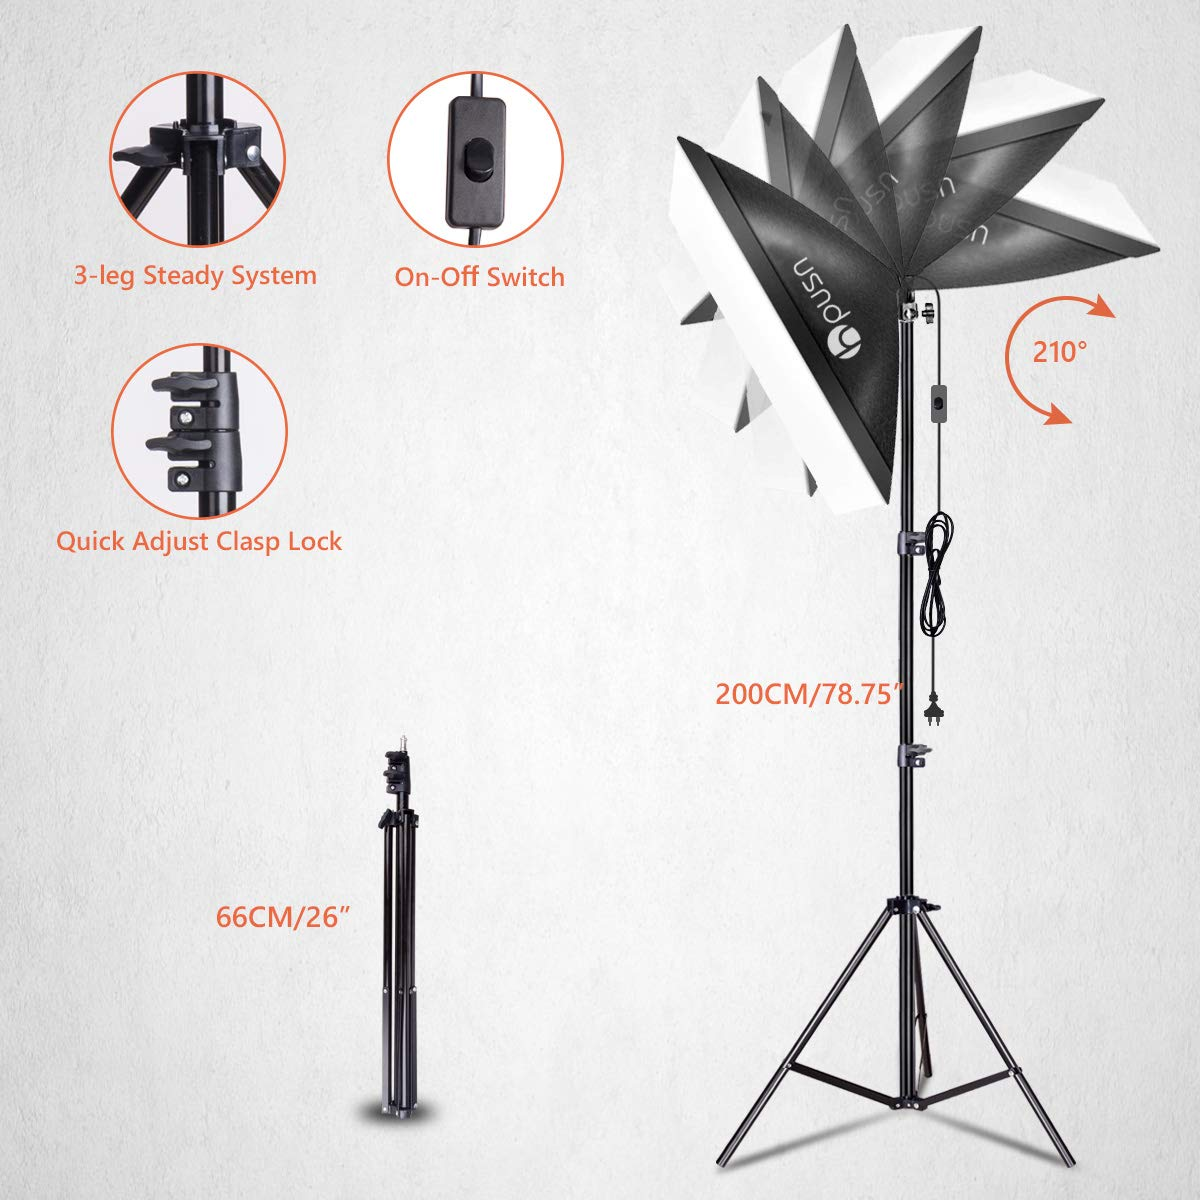 HPUSN Softbox Lighting Kit Professional Studio Photography Continuous Equipment with 85W 5500K E27 Socket Light and 2 Reflectors 50 x 70 cm and 2 Bulbs for Portrait Product Fashion Photography by HPUSN (Image #2)